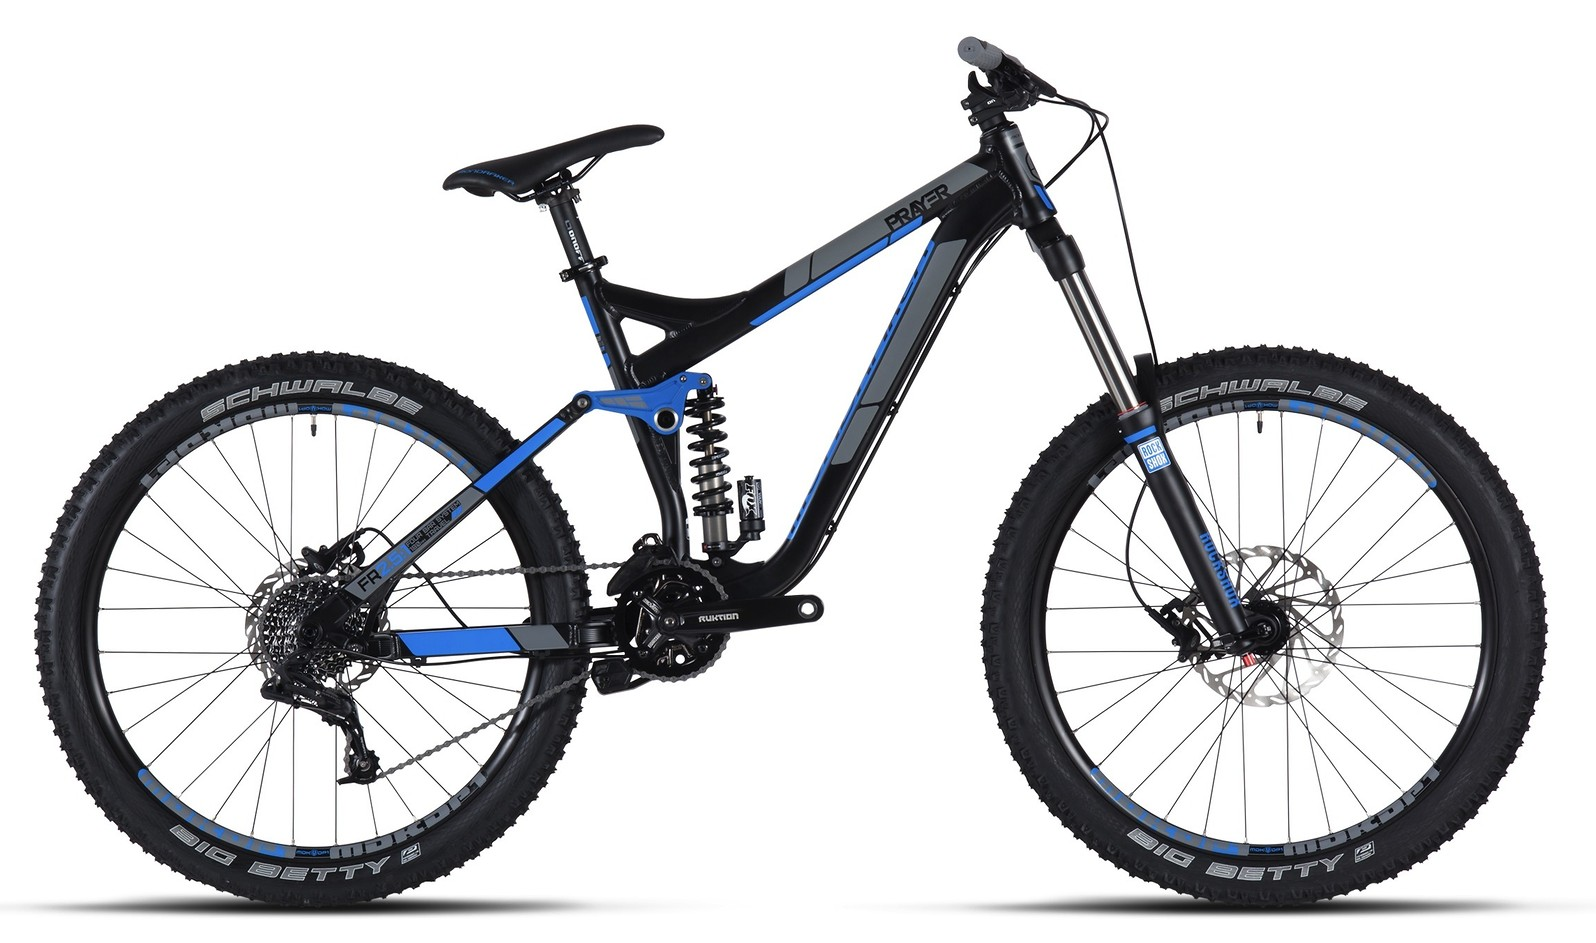 2013 Mondraker Prayer Bike bike - mondraker prayer